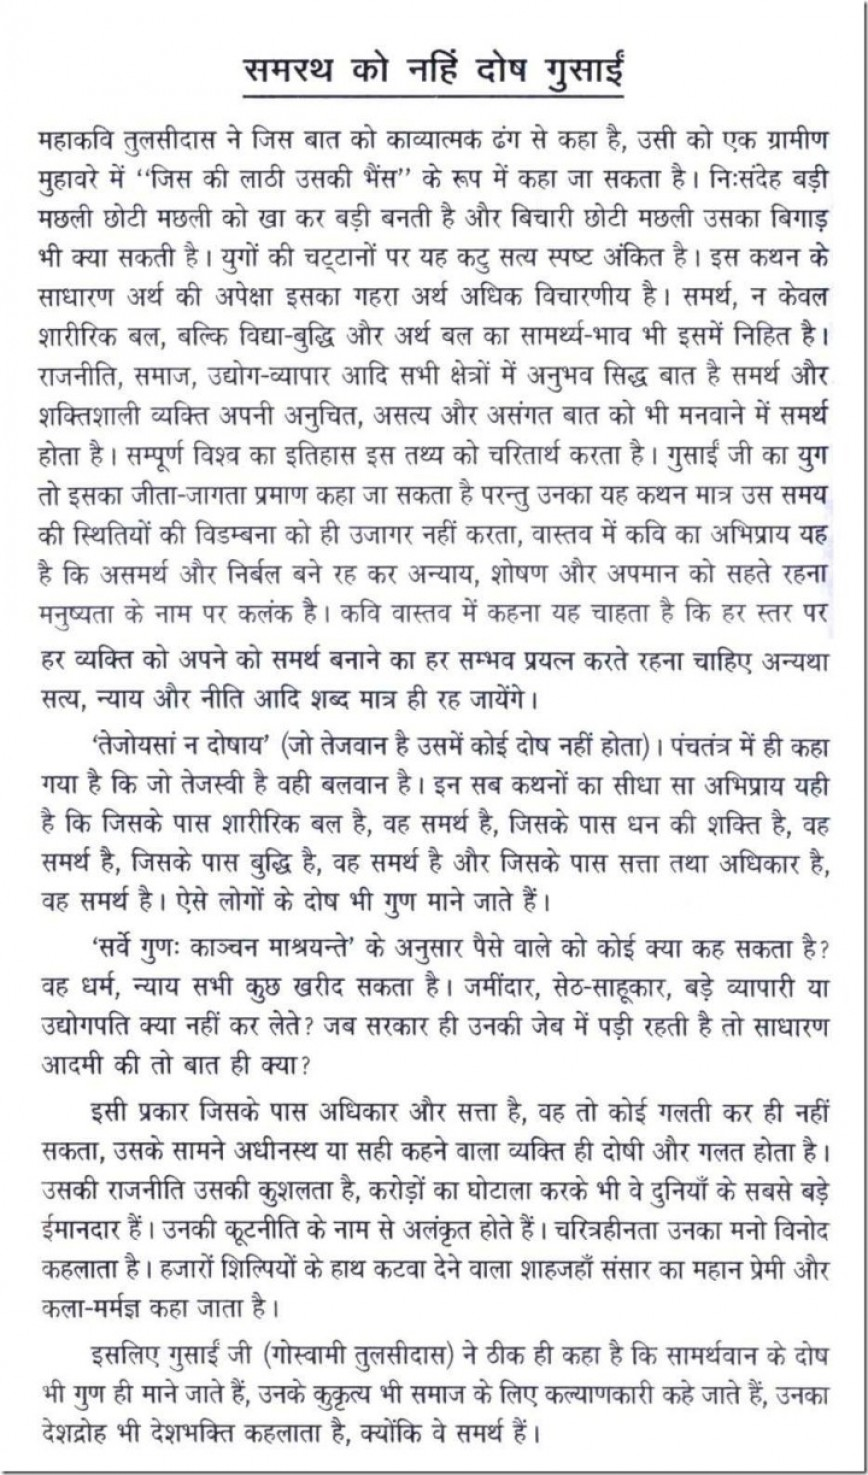 007 Good Habits Essay In Hindi Example Hh0055 Thumbresize7202c1224 Exceptional Reading Habit Wikipedia 868